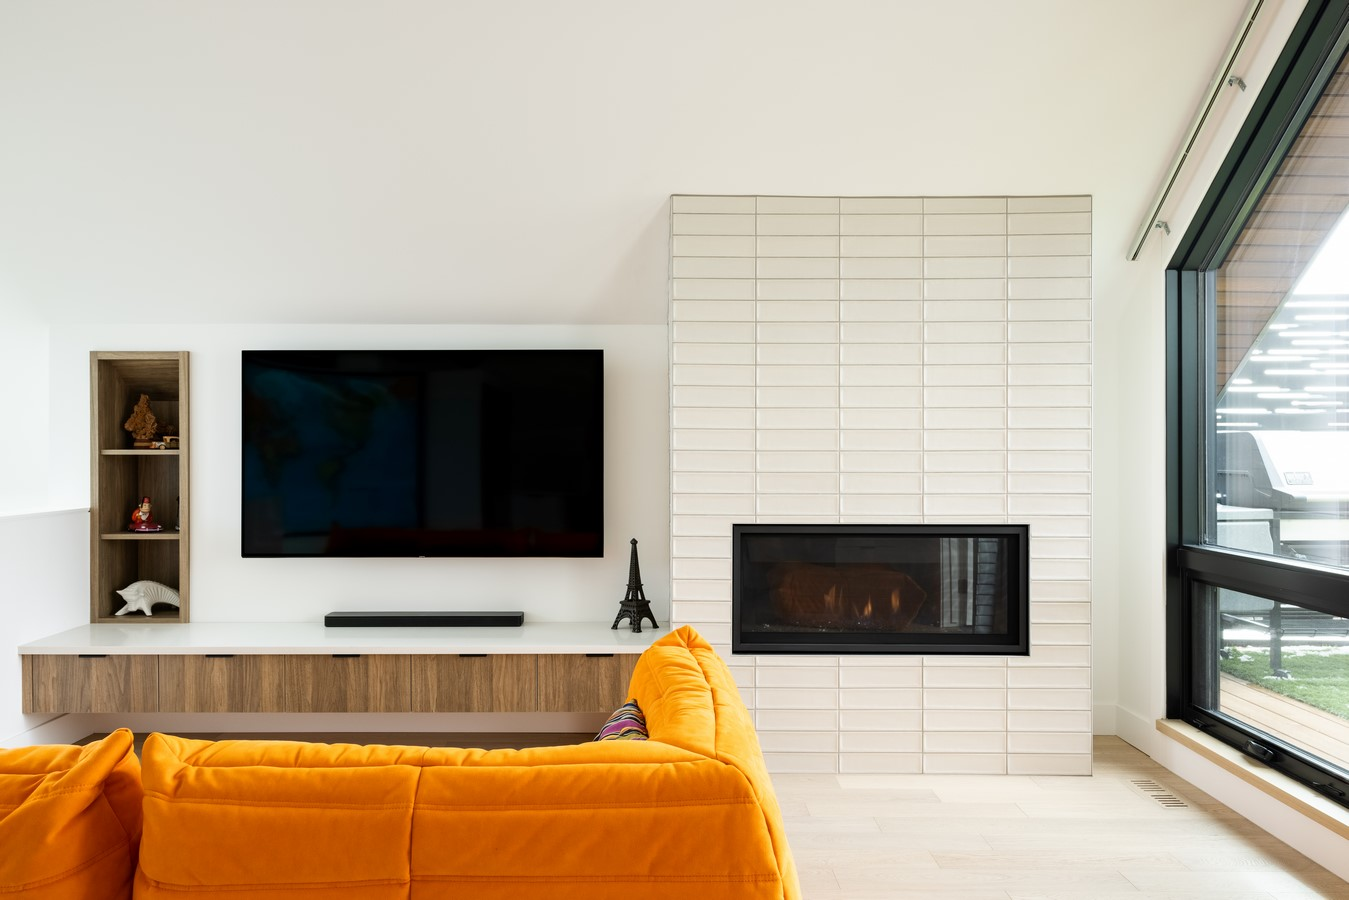 Kensington 11 by Alloy Homes Incorporated - Sheet3